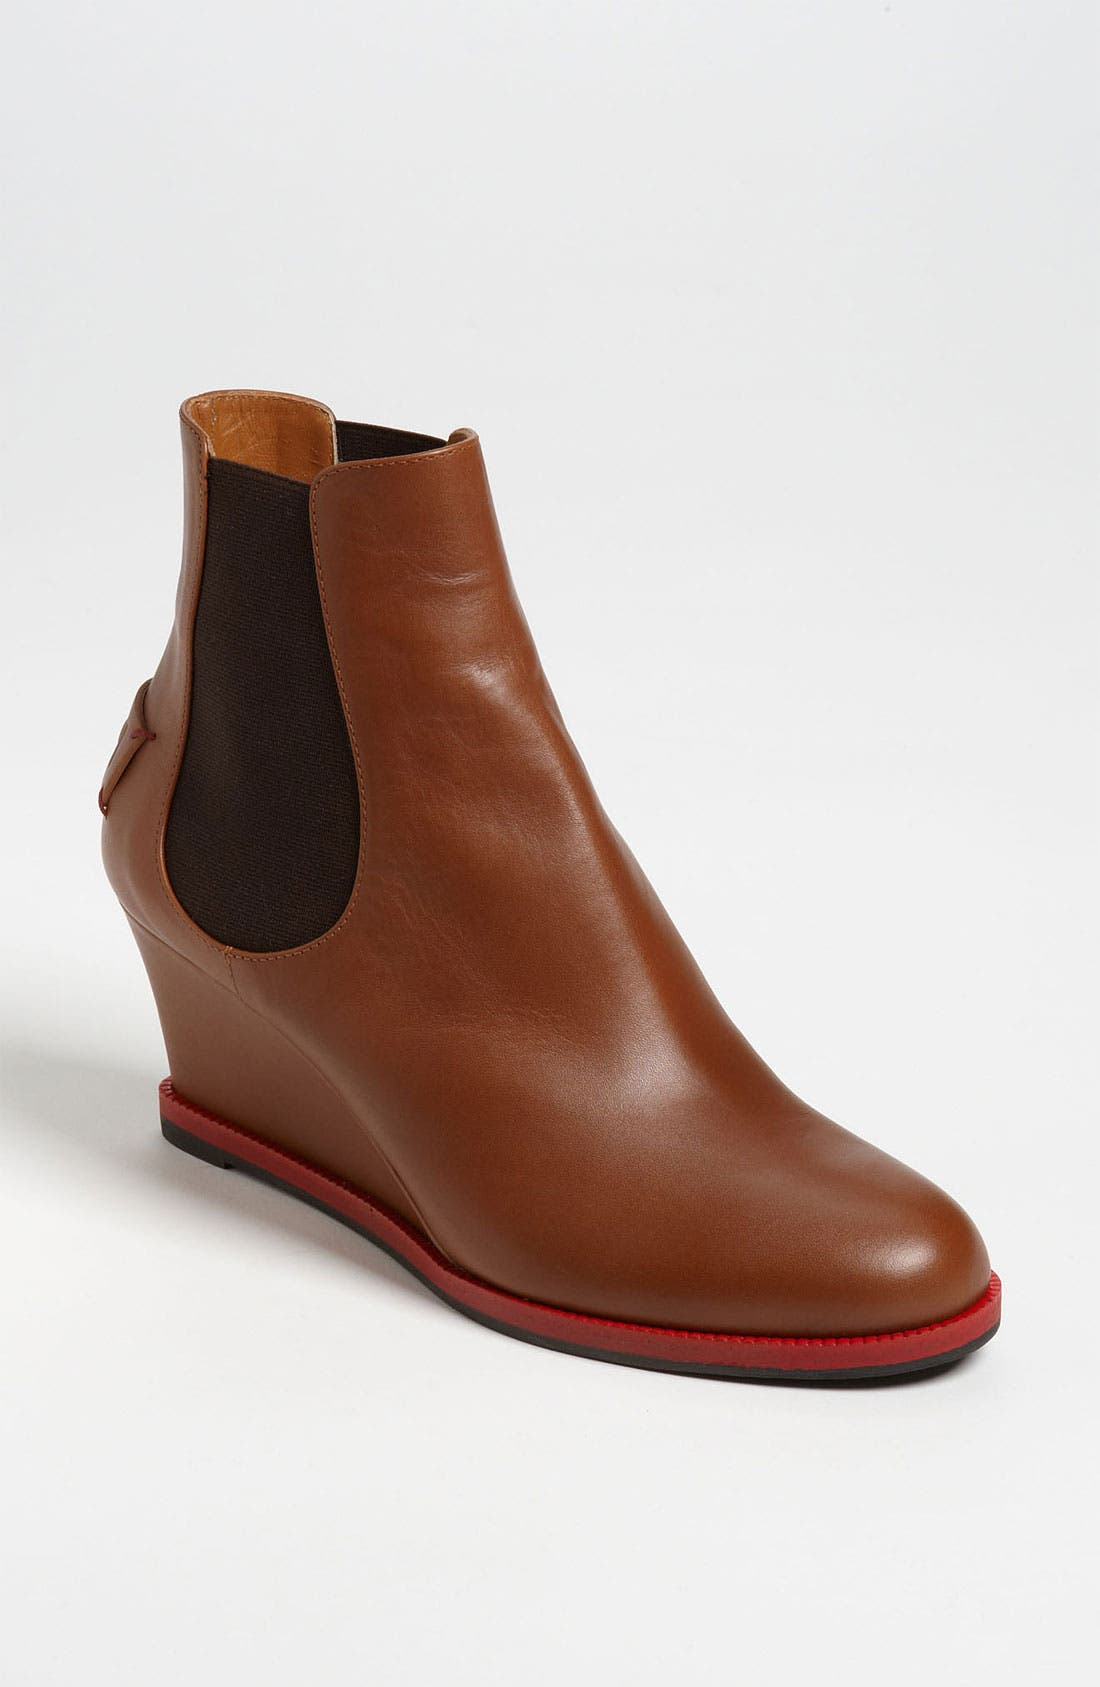 Main Image - Fendi Gored Wedge Ankle Boot